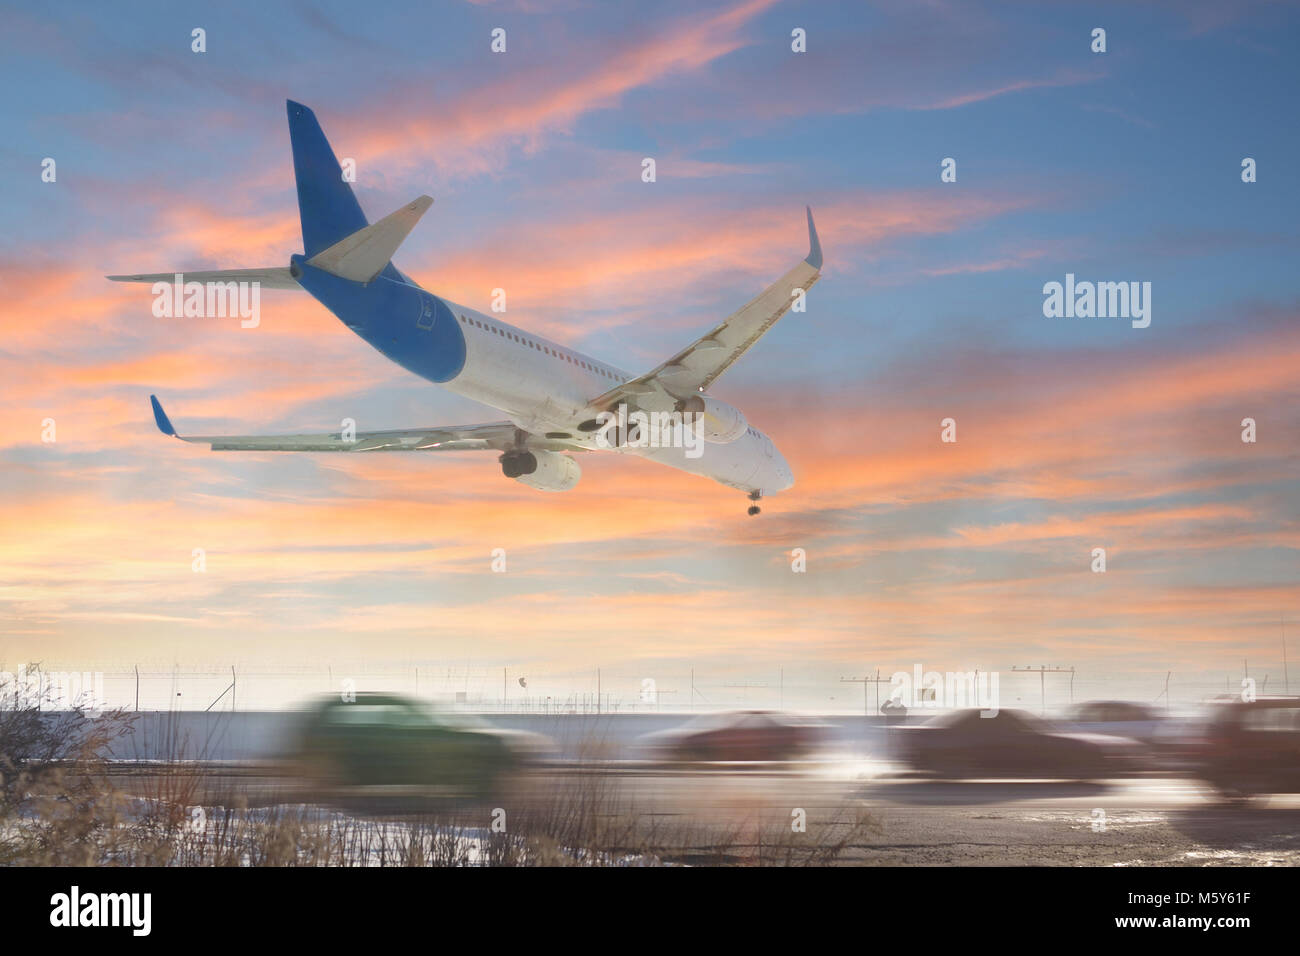 Tail view of landing airplane. Aircraft flying over highway.  Road with high traffic near airport runway. Type of - Stock Image